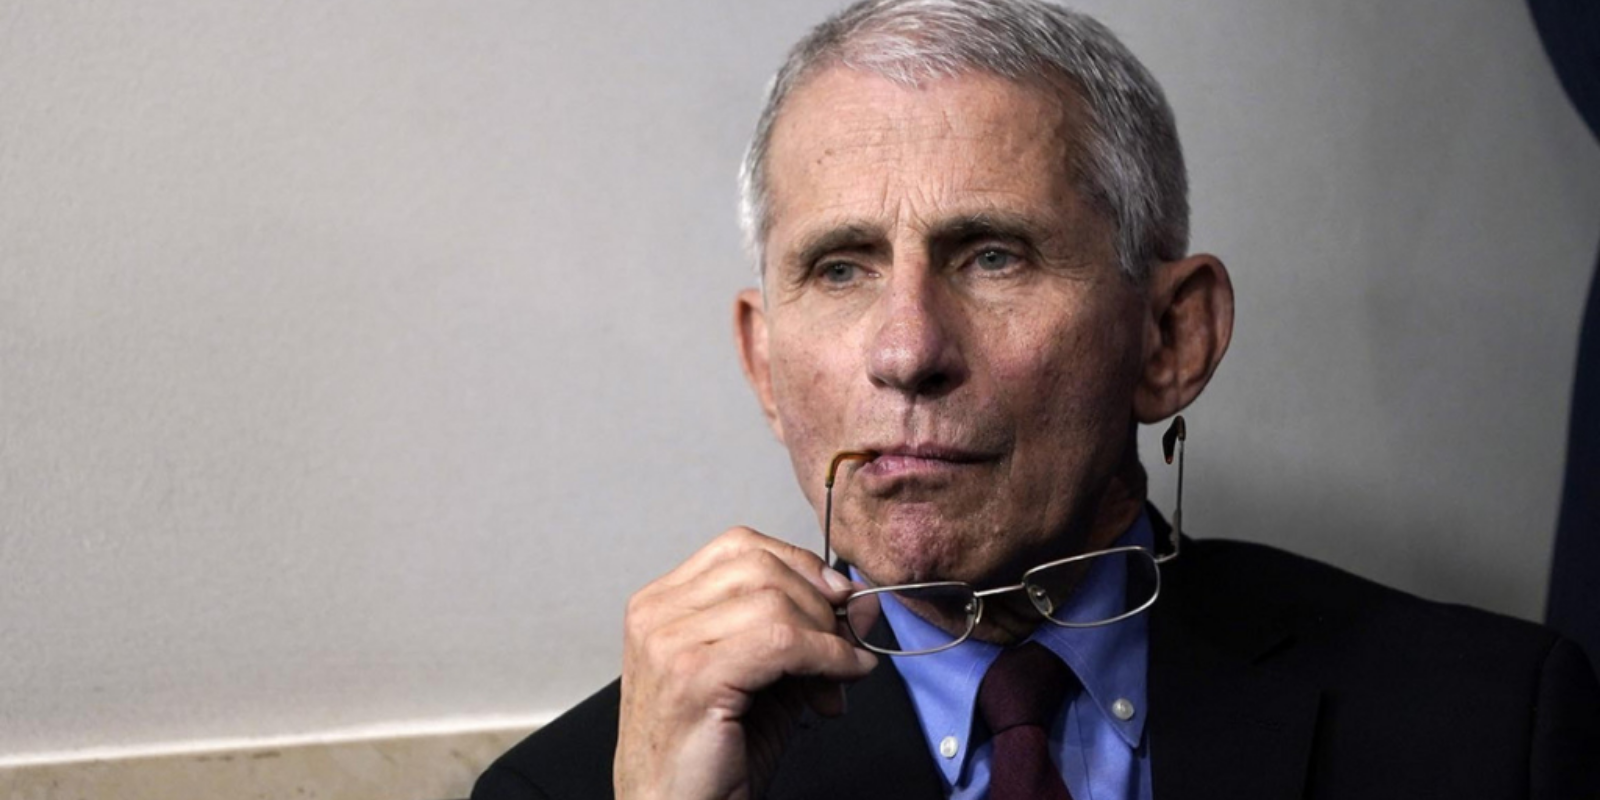 Fauci changes the definition of 'fully vaccinated' to include booster shots